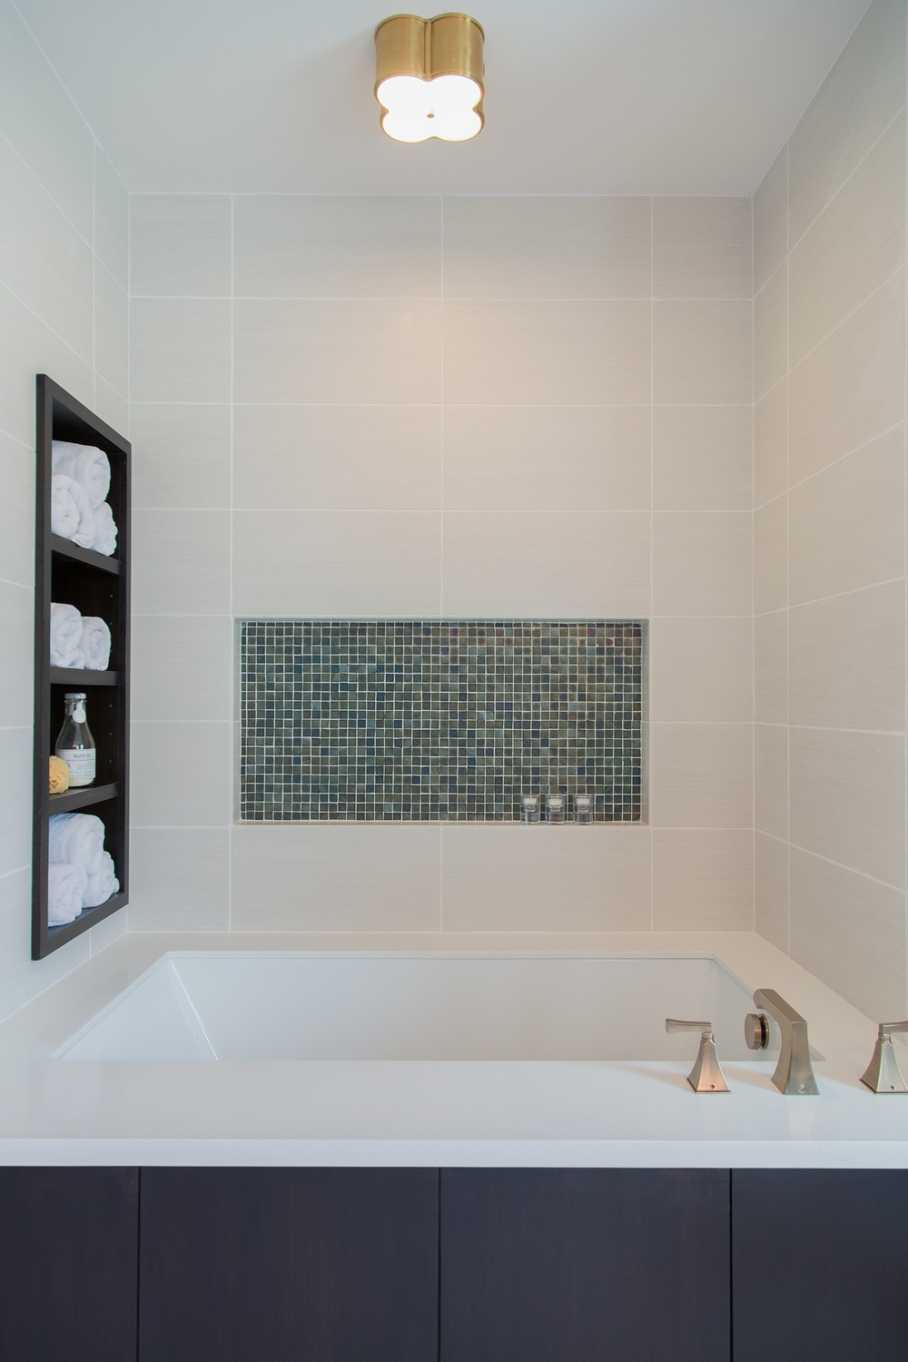 Bathroom remodel; tub; tile; storage | Interior designer: Carla Aston / Photographer: Tori Aston